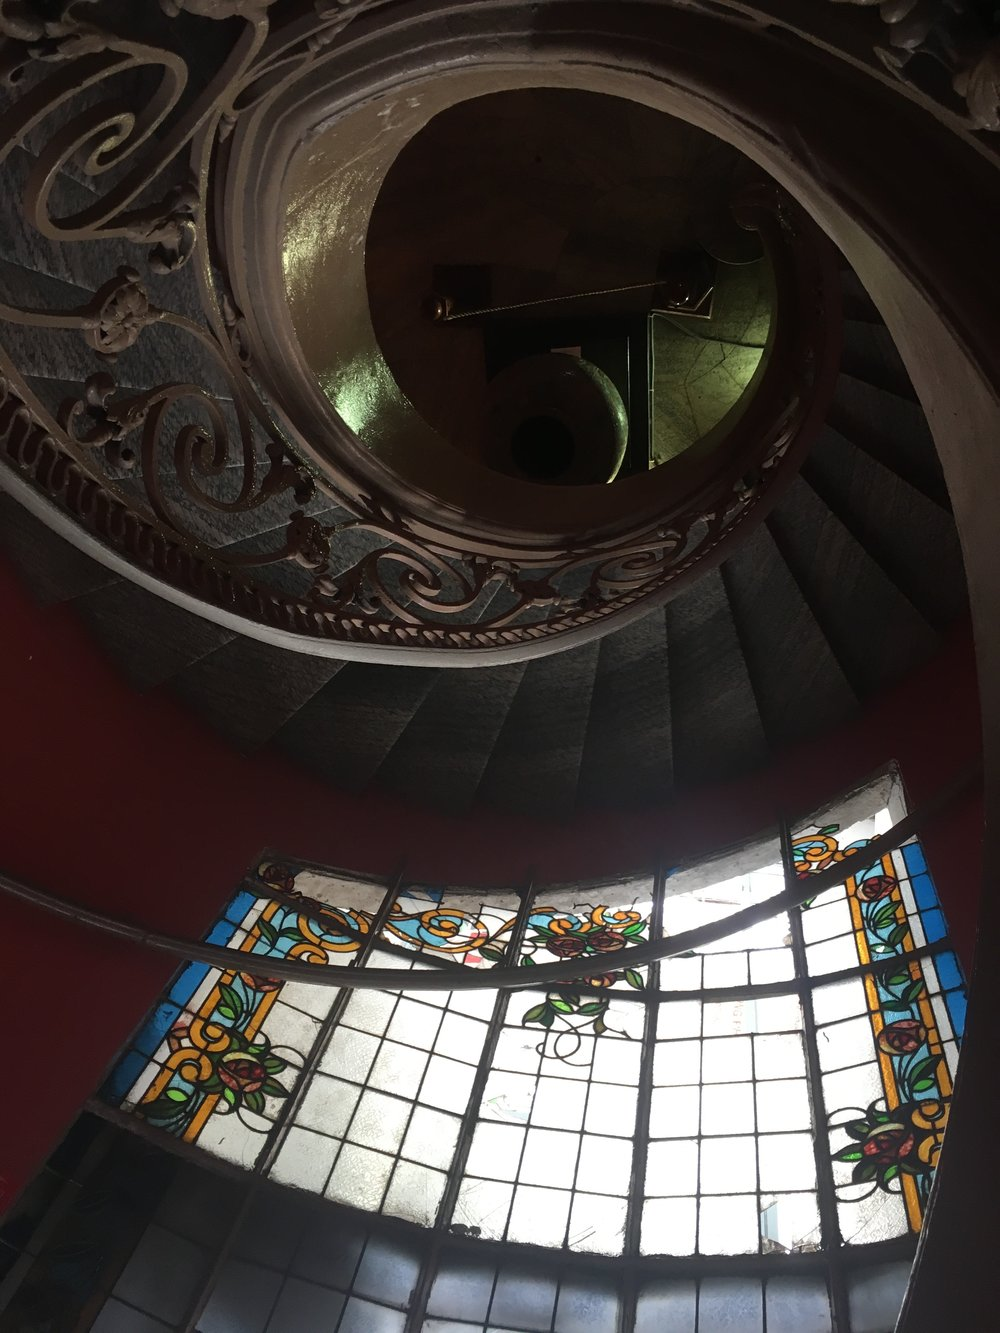 a spiral staircase and stained glass window inside the Museum of Fine Arts